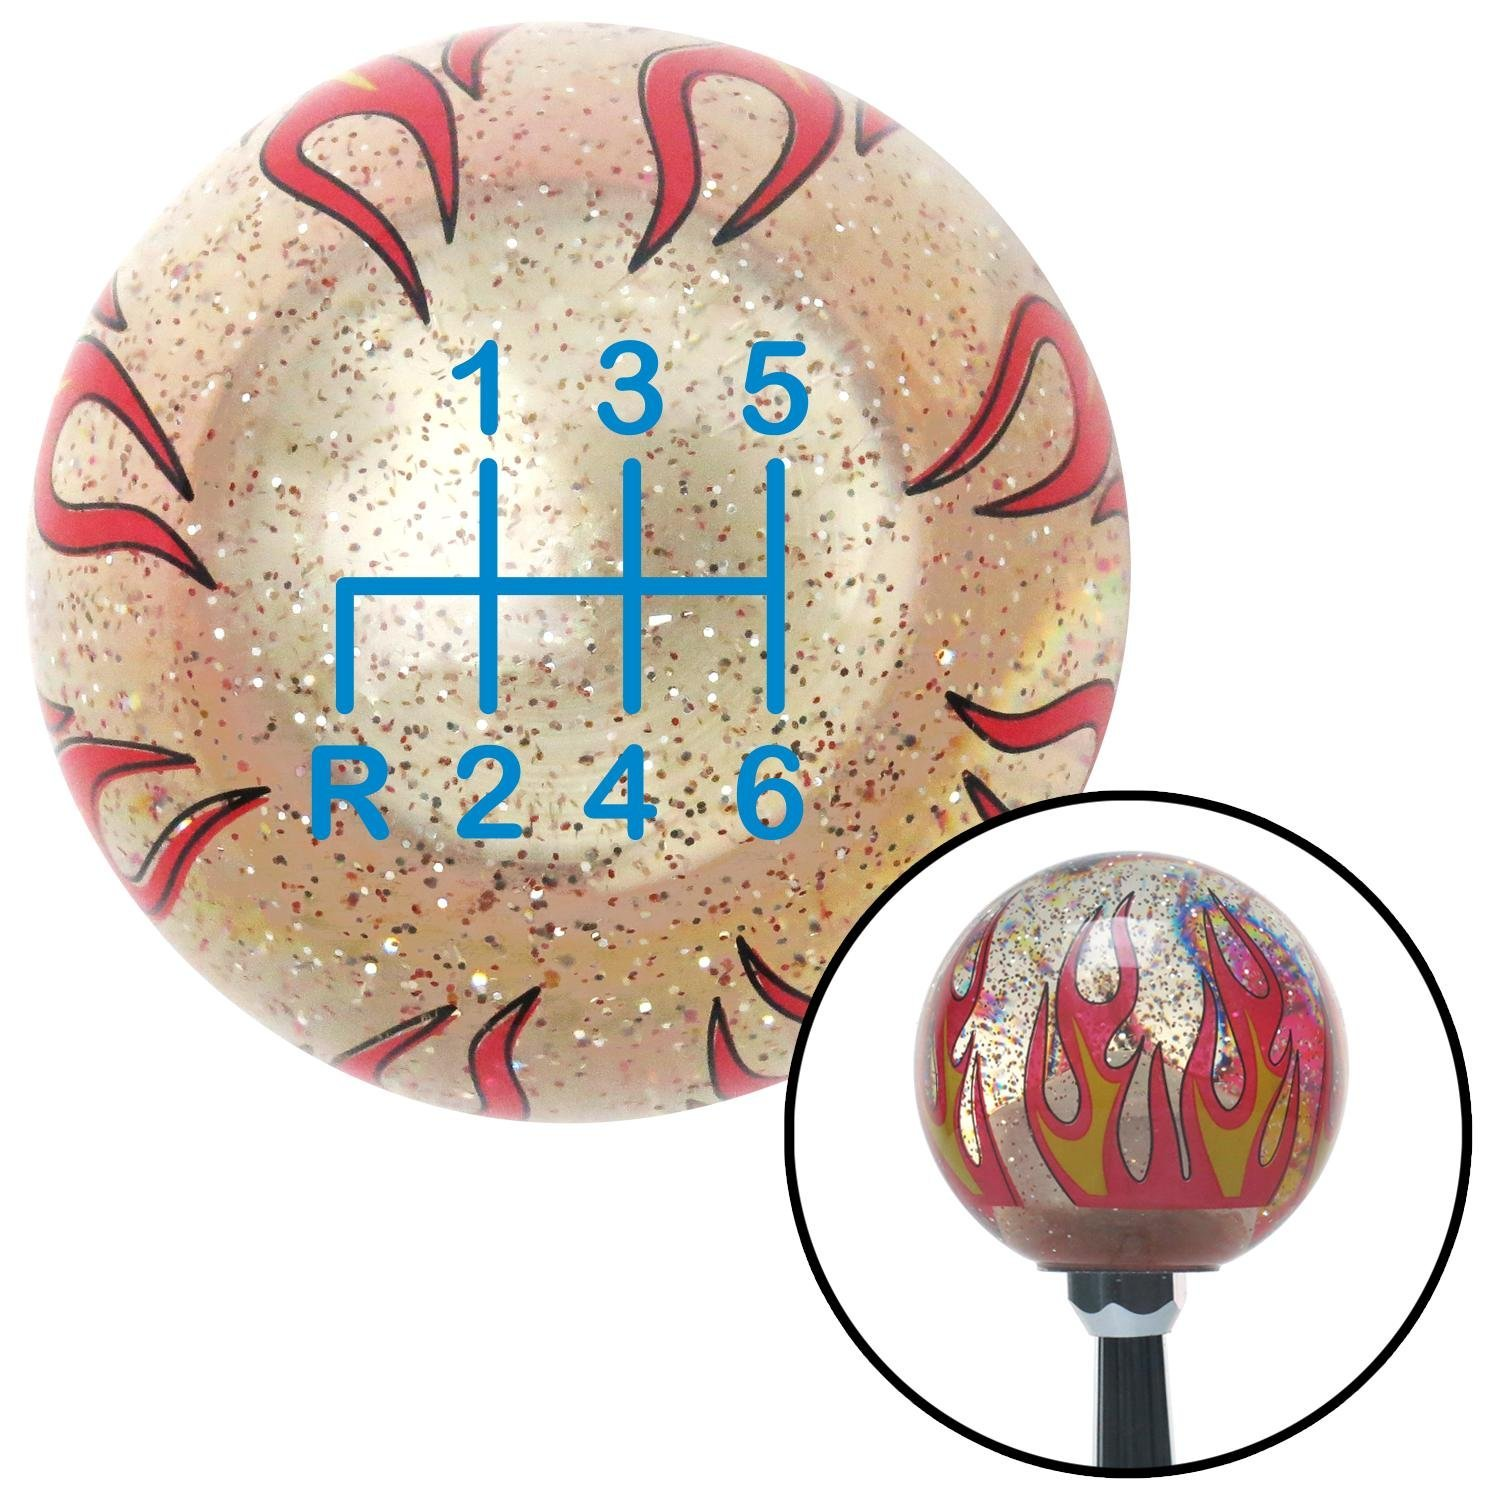 American Shifter 234496 Clear Flame Metal Flake Shift Knob with M16 x 1.5 Insert Blue Shift Pattern 22n